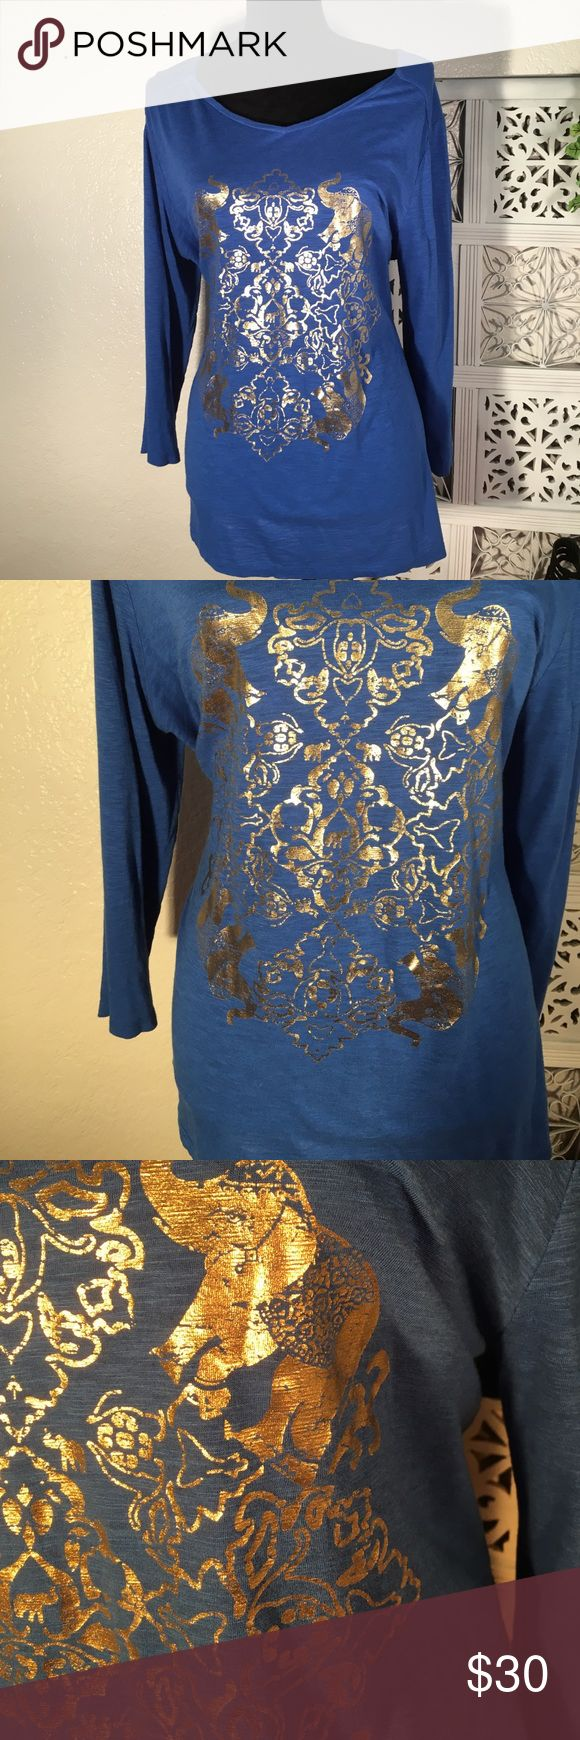 Crown & Ivy Royal Blue & Gold Long Sleeved Top See photos above for information.  Tags Removed.  Never Worn. Non smoking House.  New condition. crown & ivy Tops Tees - Long Sleeve